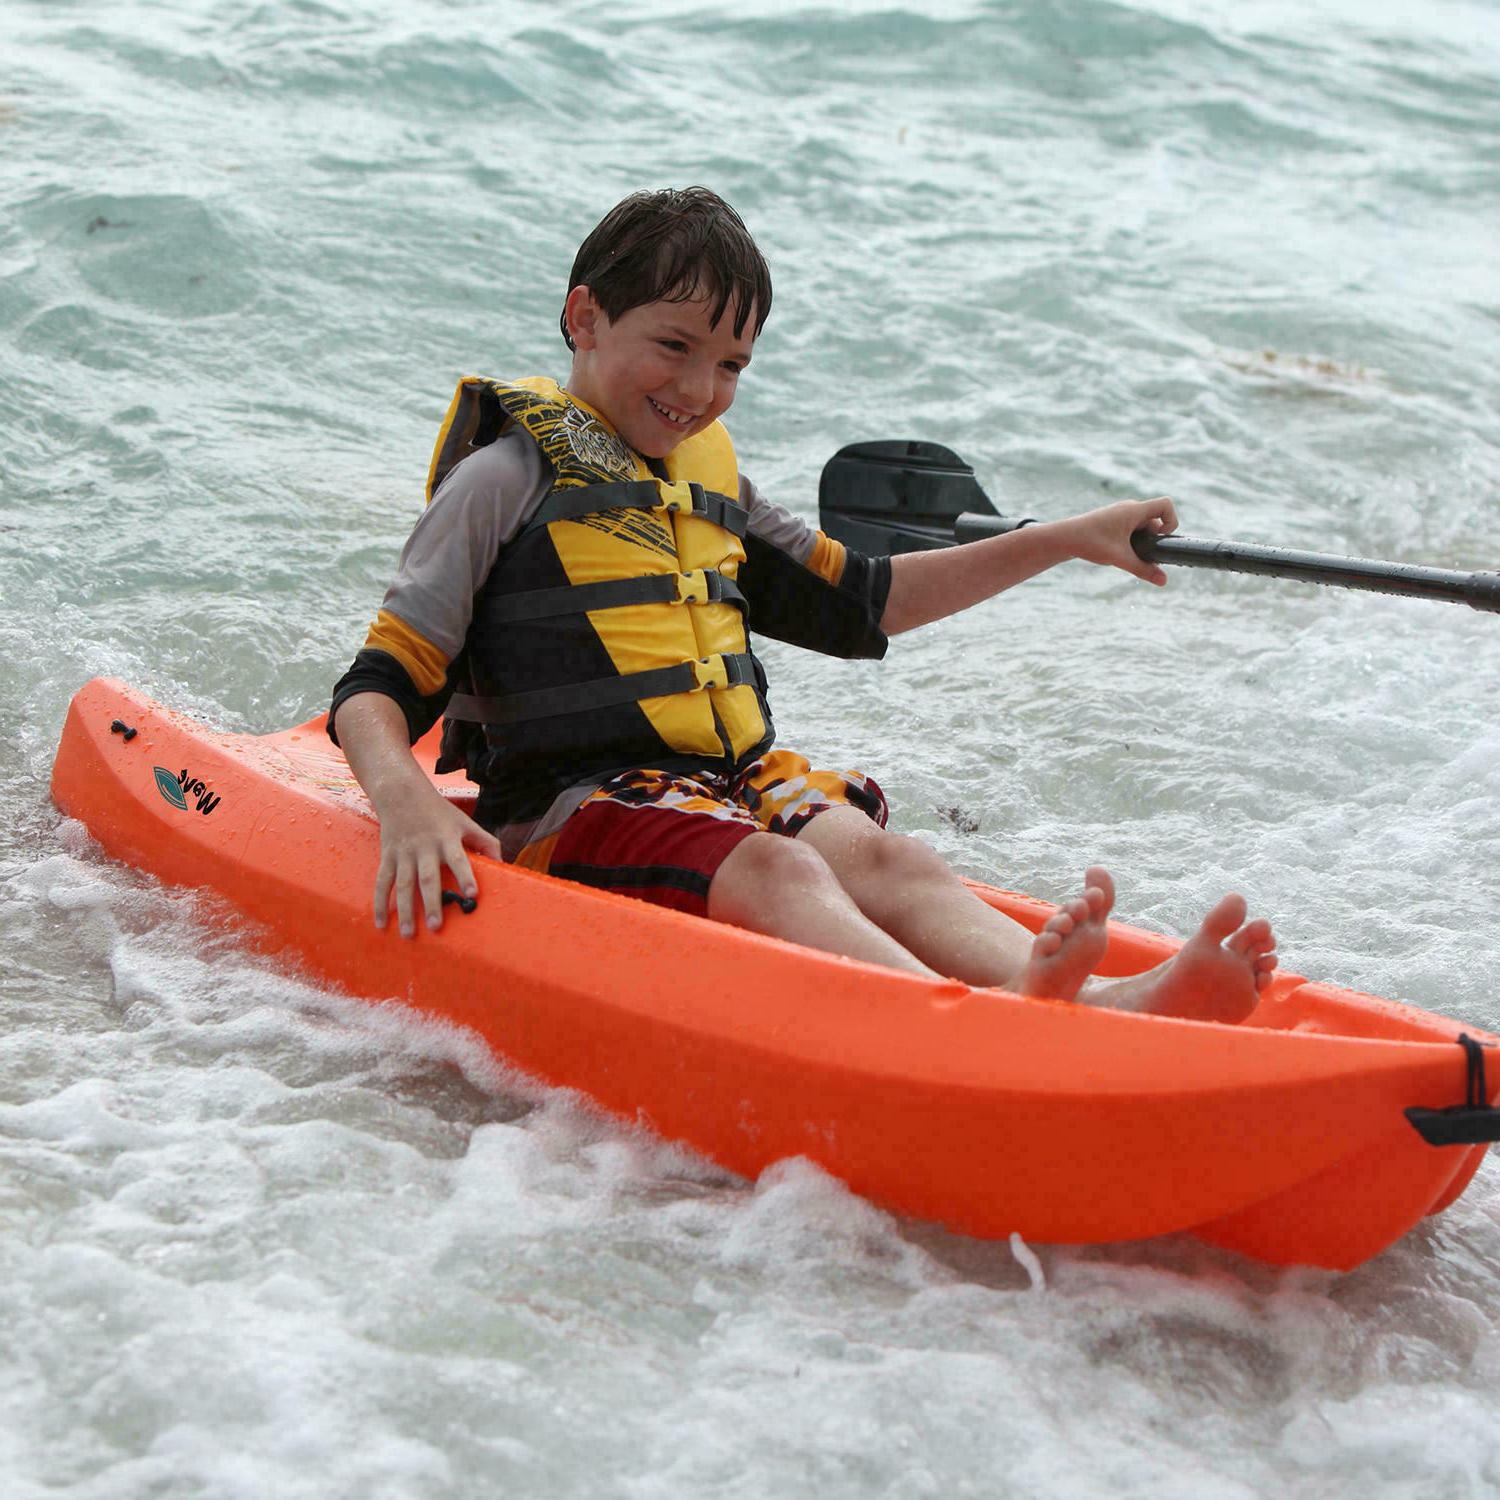 Kayak wave with Paddle for Youth - Orange